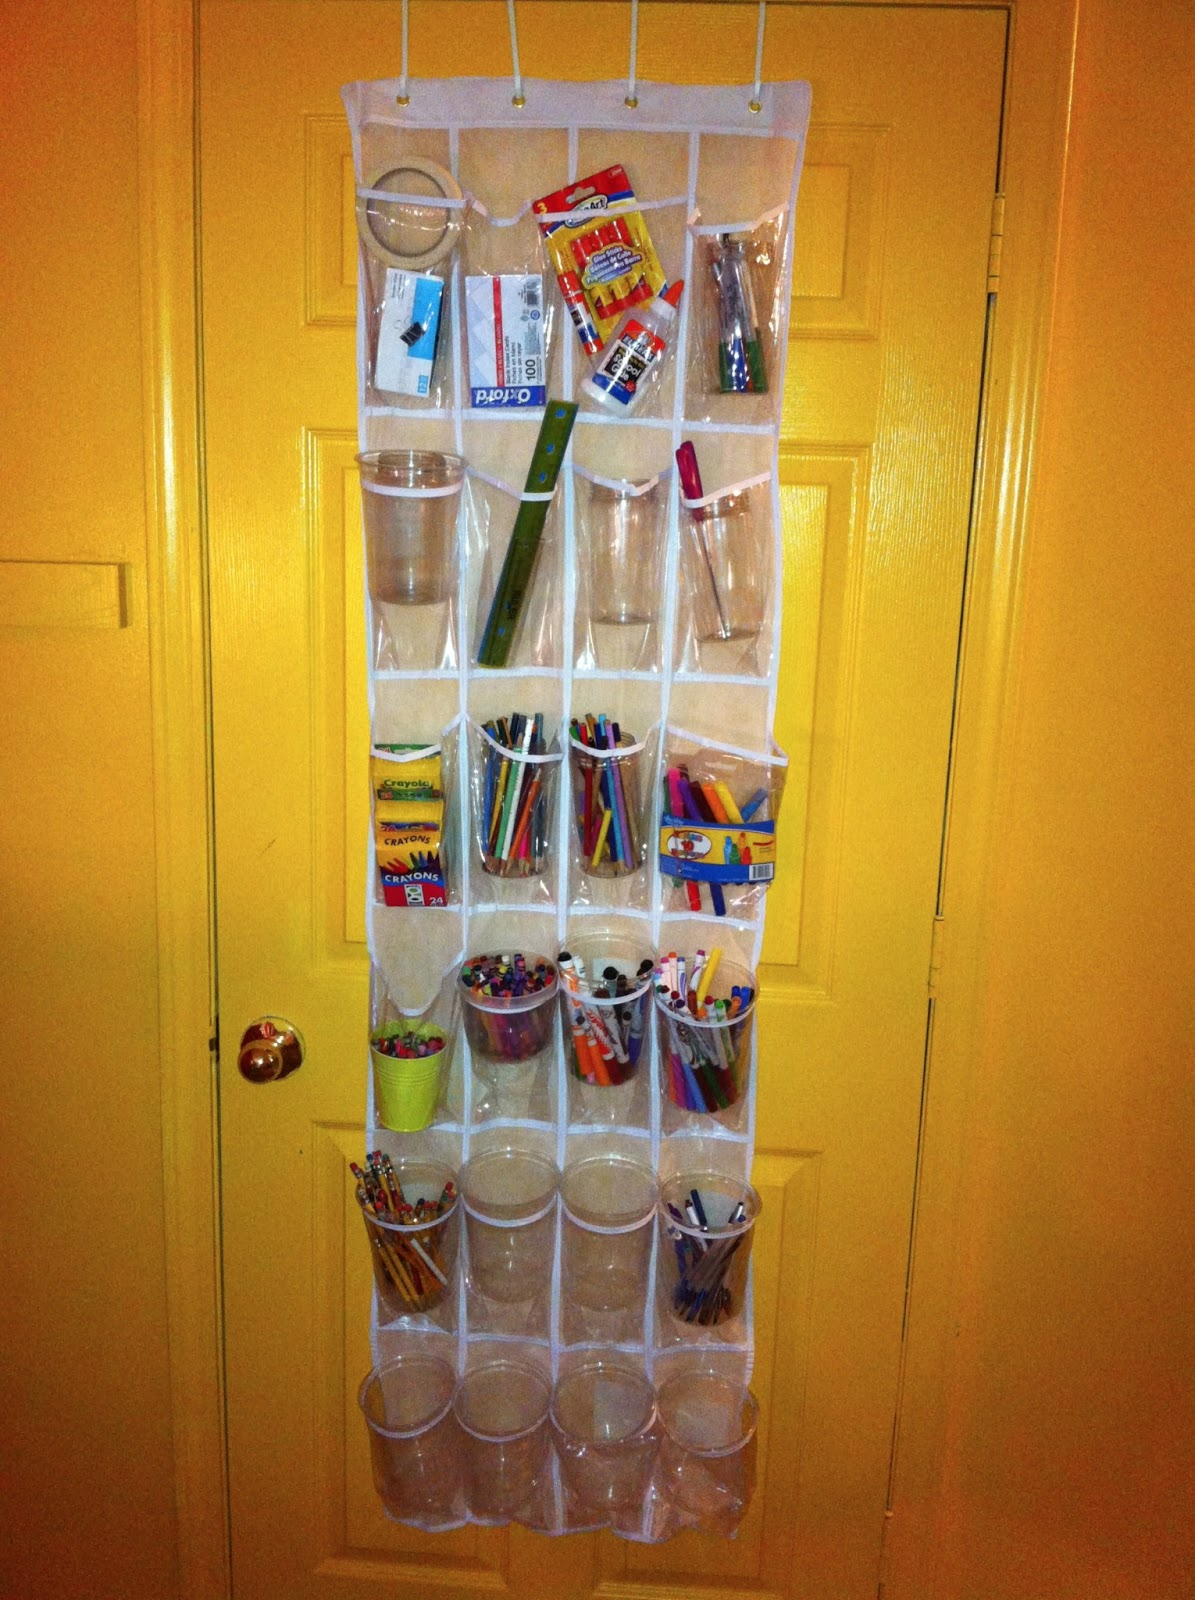 Storing School Supplies in Over-the-Door Shoe Organizers & Storing School Supplies in Over-the-Door Shoe Organizers - Blog